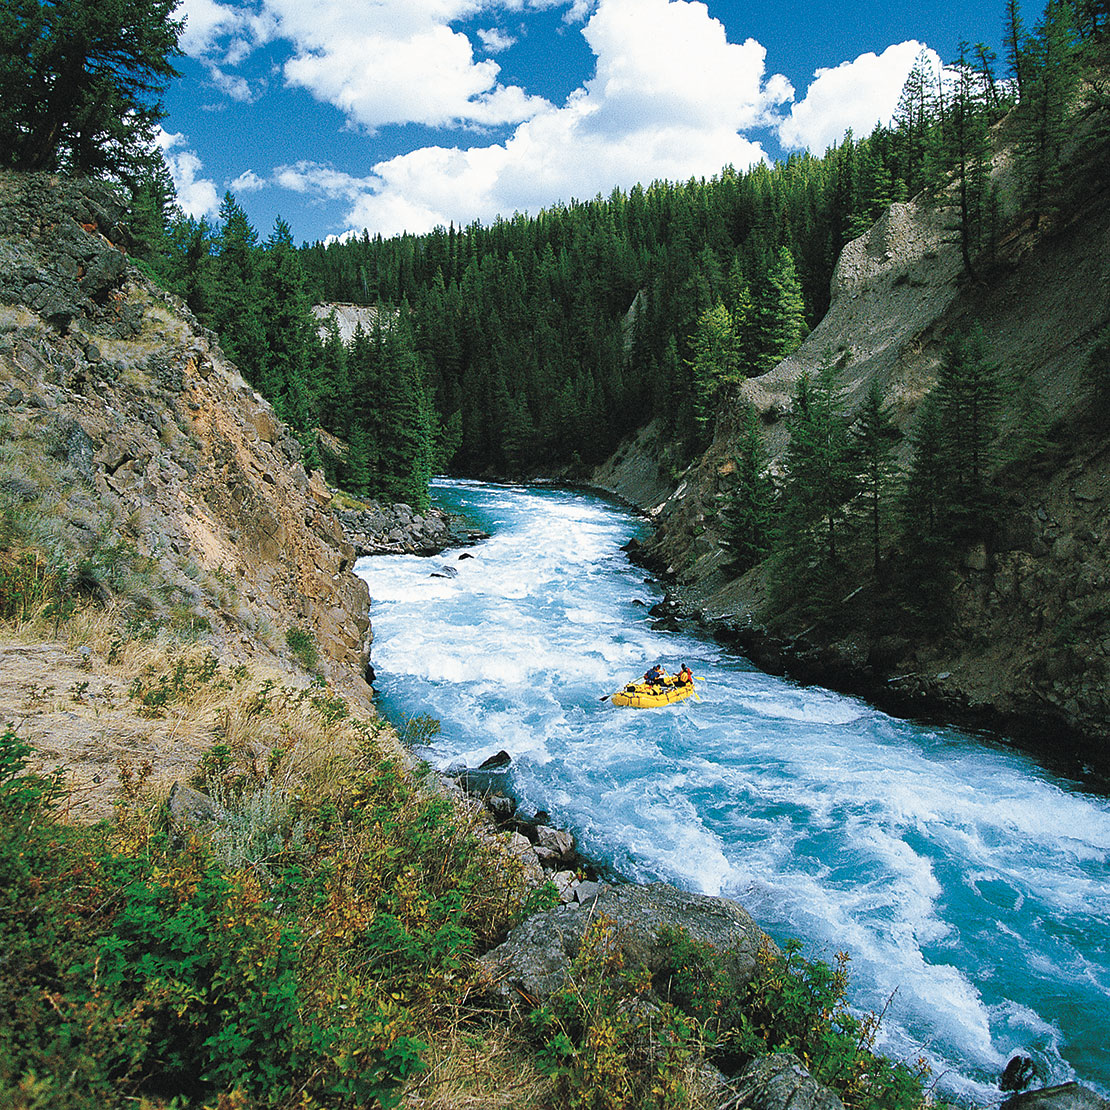 Canadian Rafting Adventure on the Chilko River